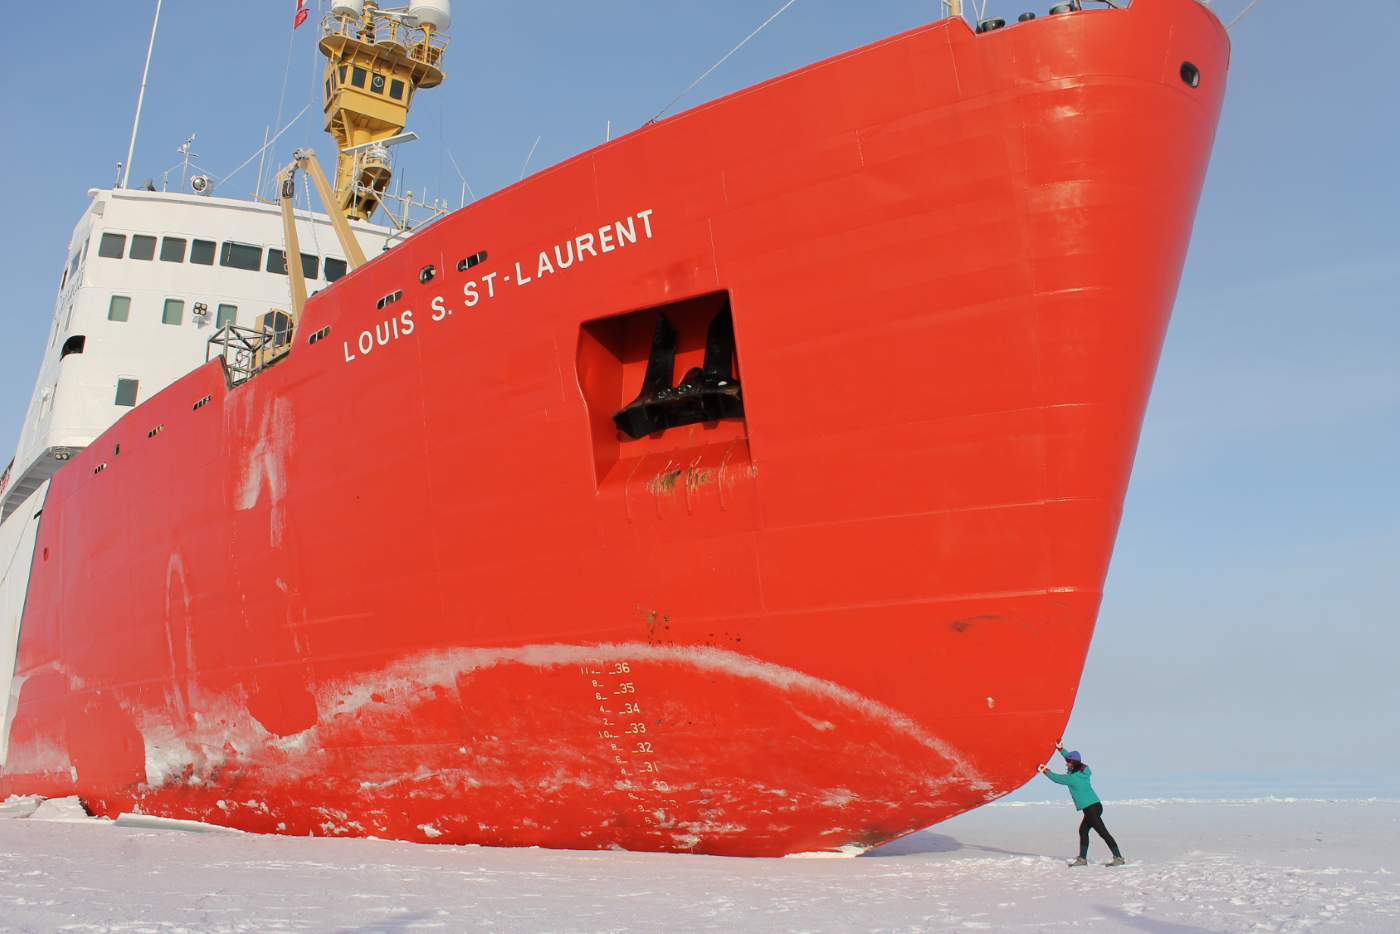 Large red  ice breaker ship fills the frame with small figure in the bottom right seeming to push the ship